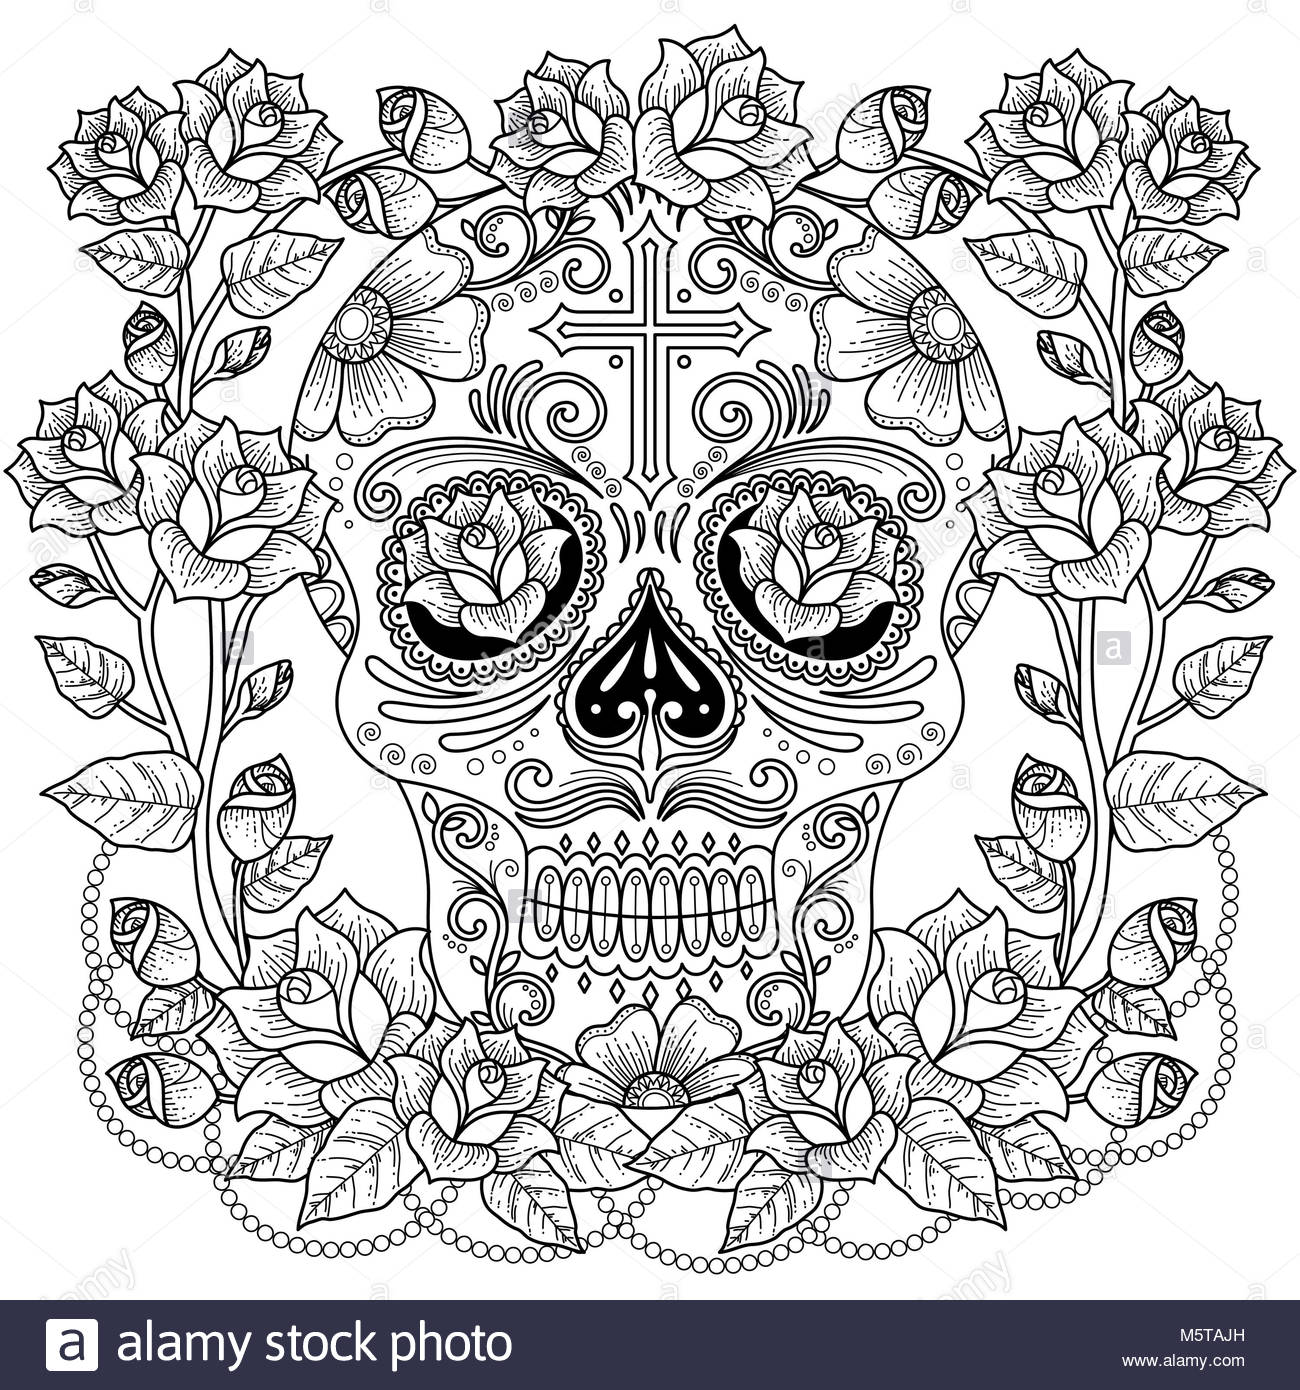 Skull Rose Cut Out Stock Images & Pictures - Alamy